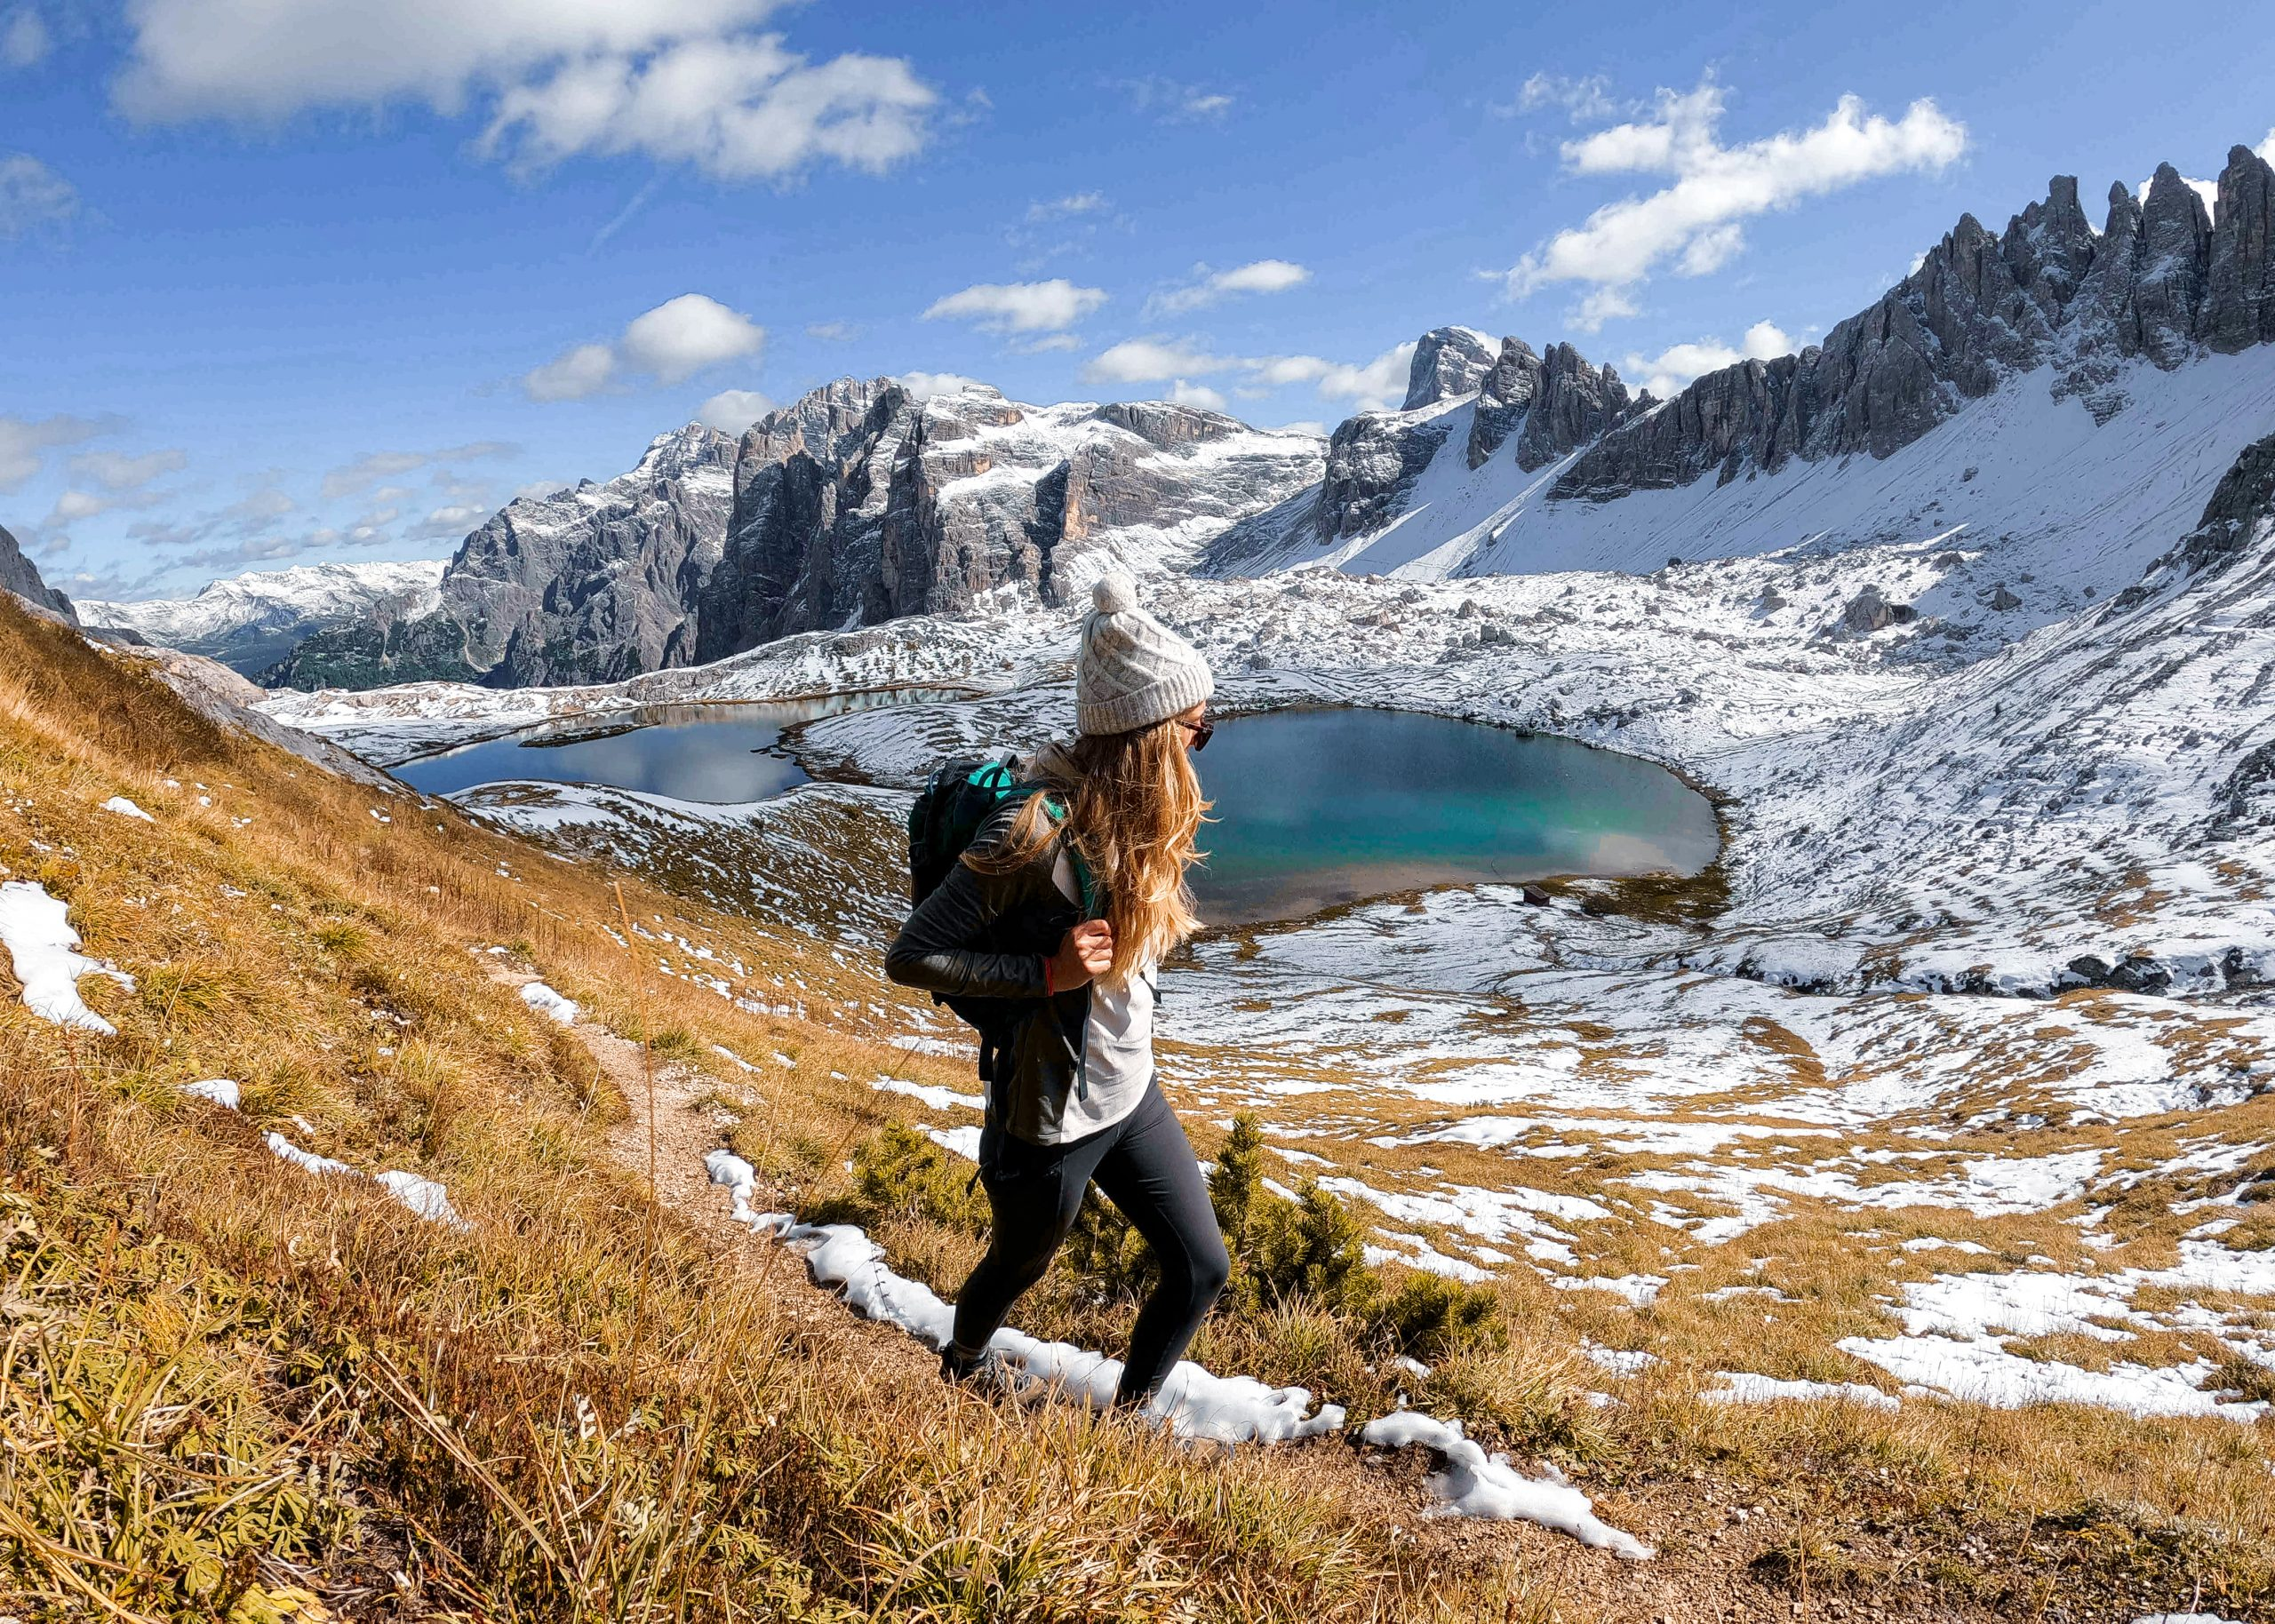 3 days exploring the Tre Cime di Lavaredo area